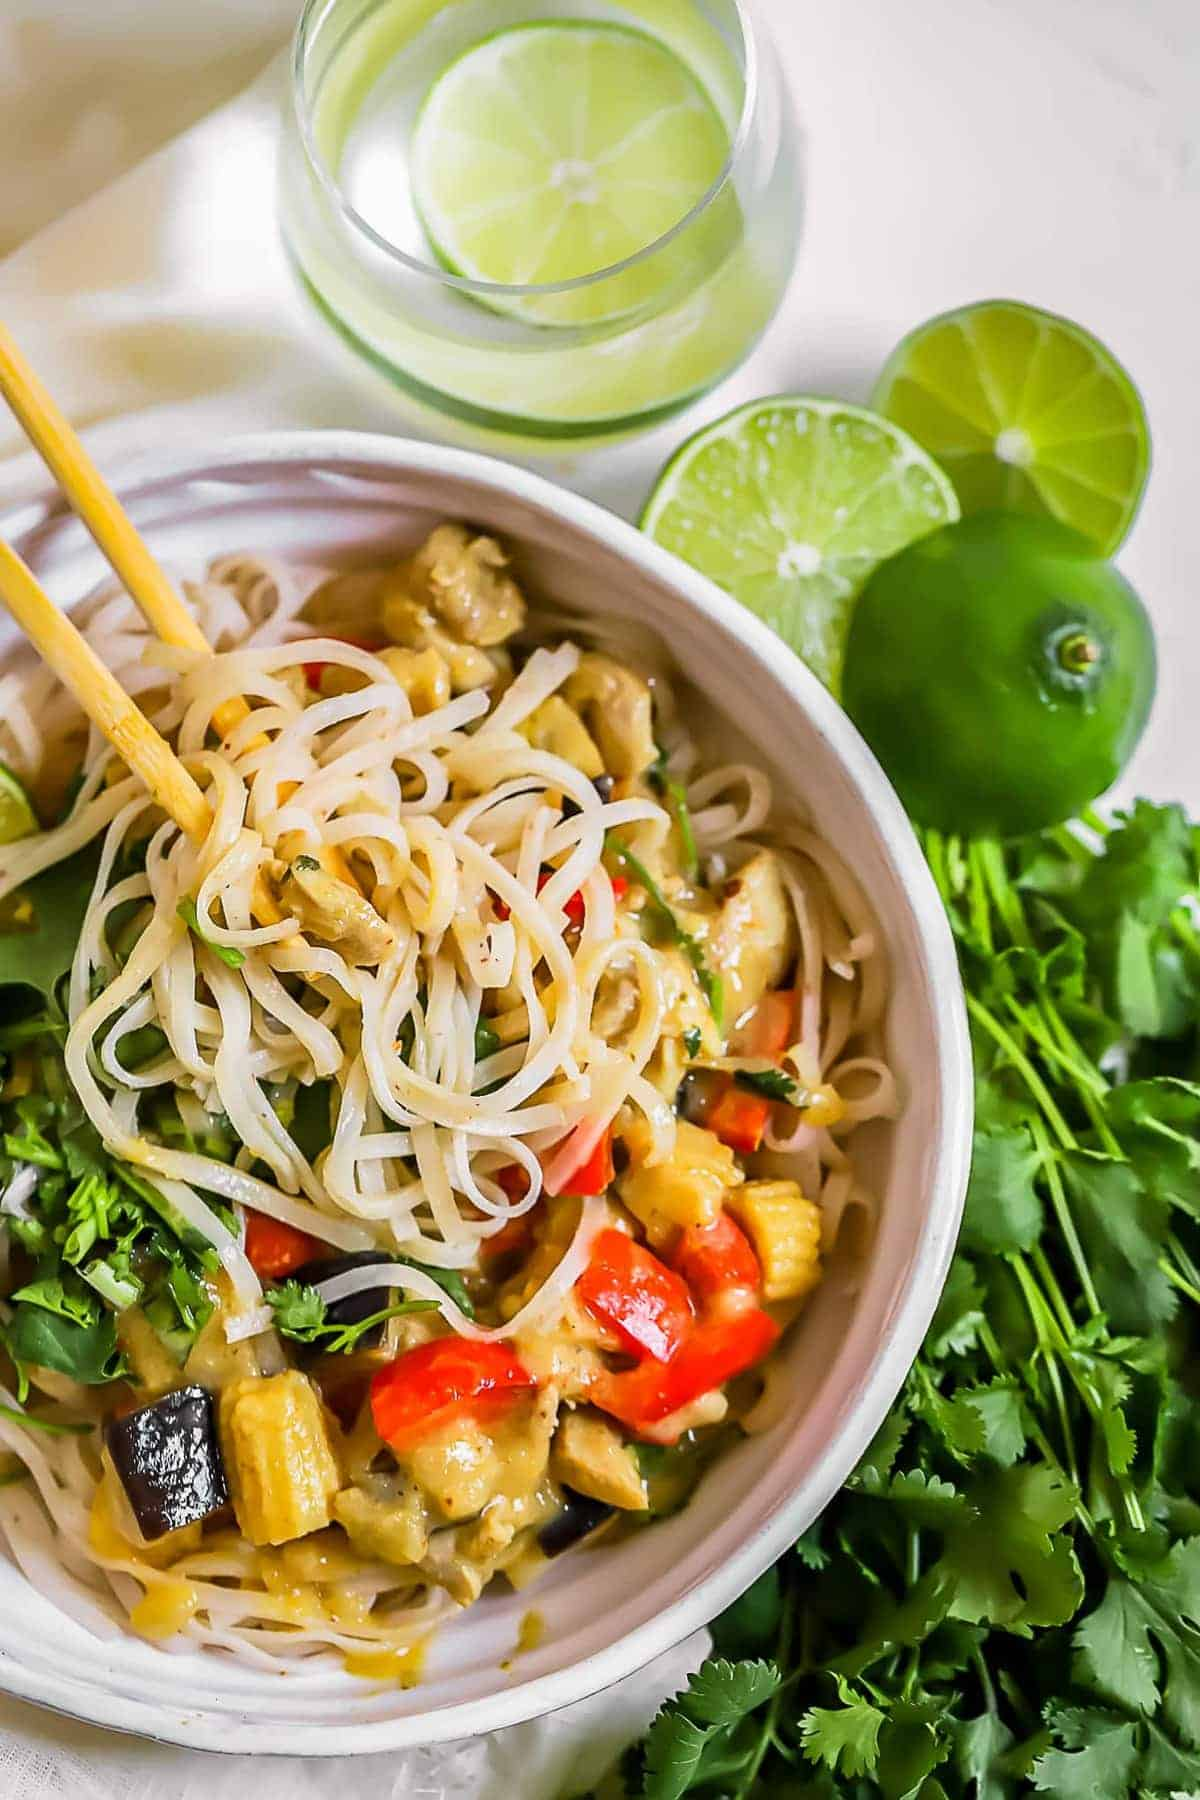 Top shot of a Thai green curry chicken bowl with chopsticks